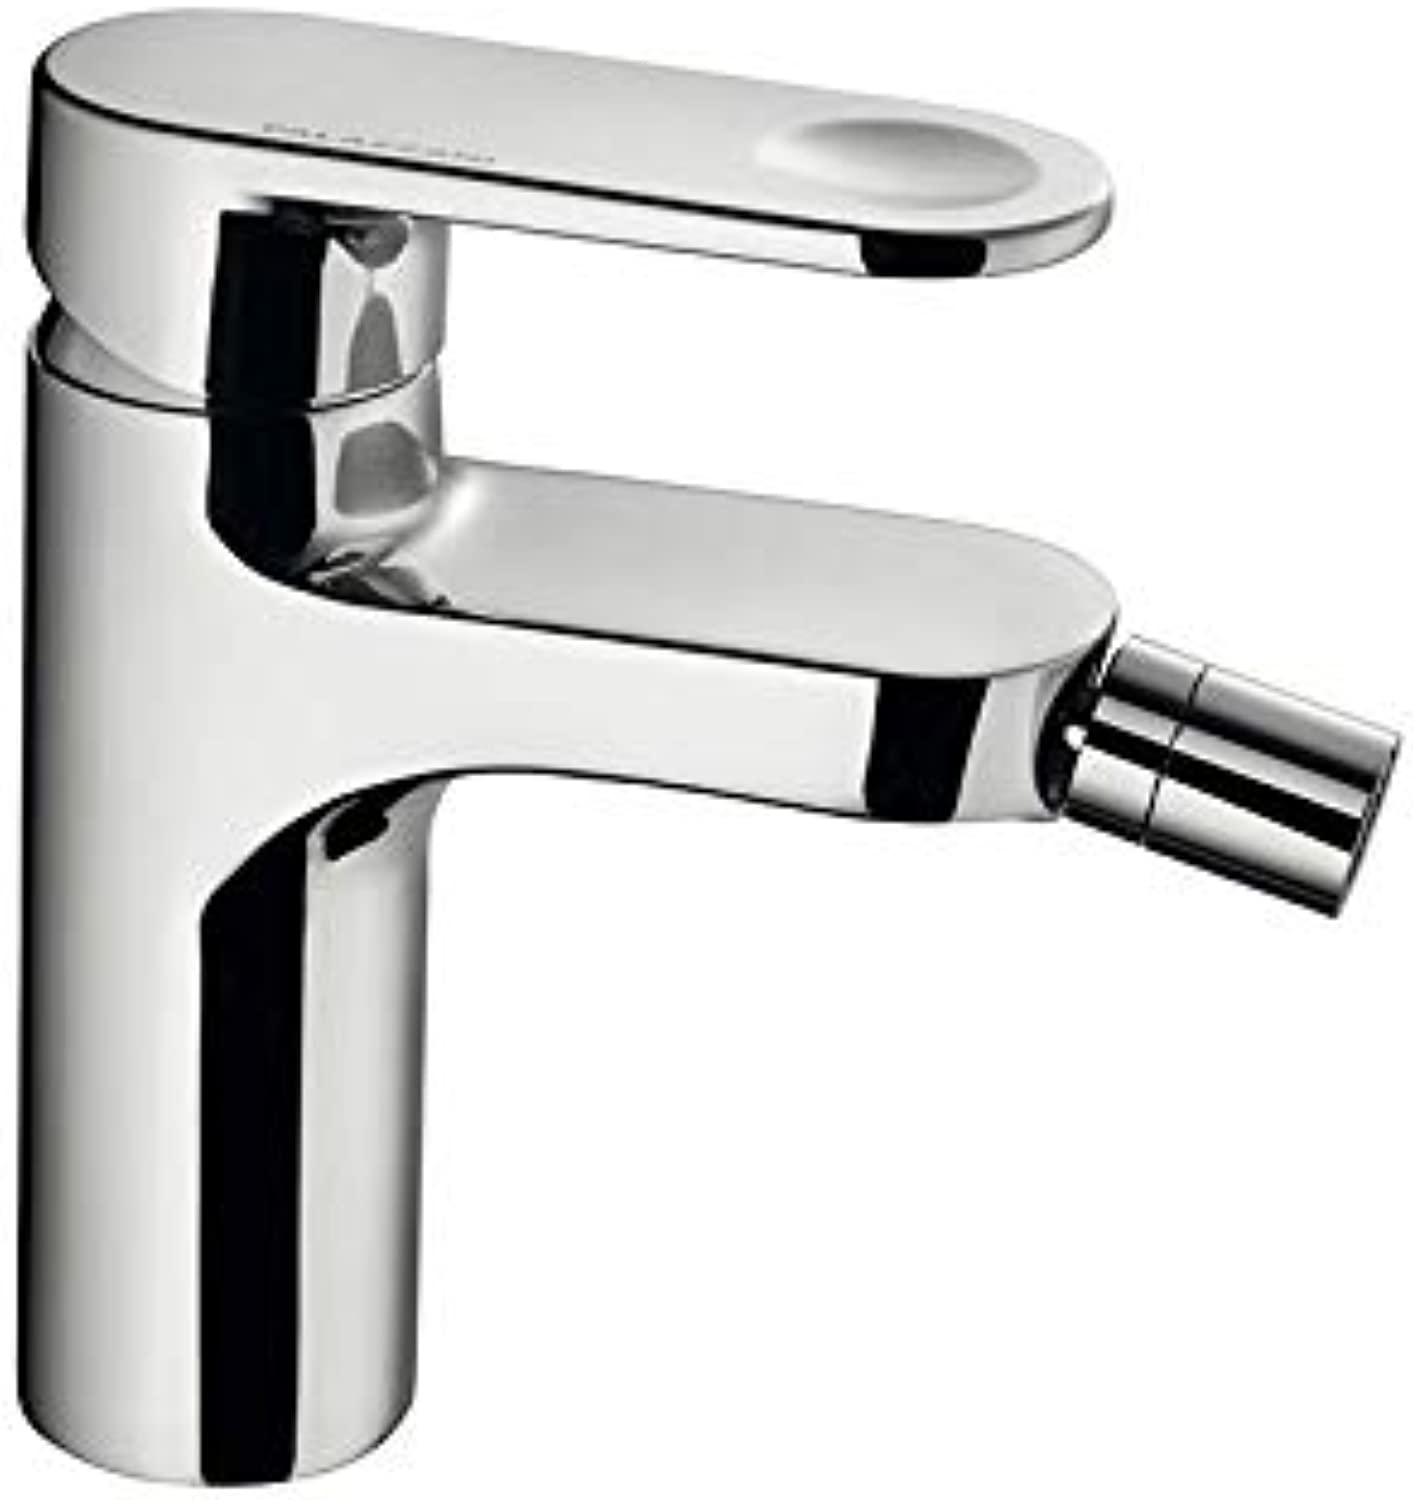 Palazzani Mixer Tap Bidet Wild with Drain Art. 084010